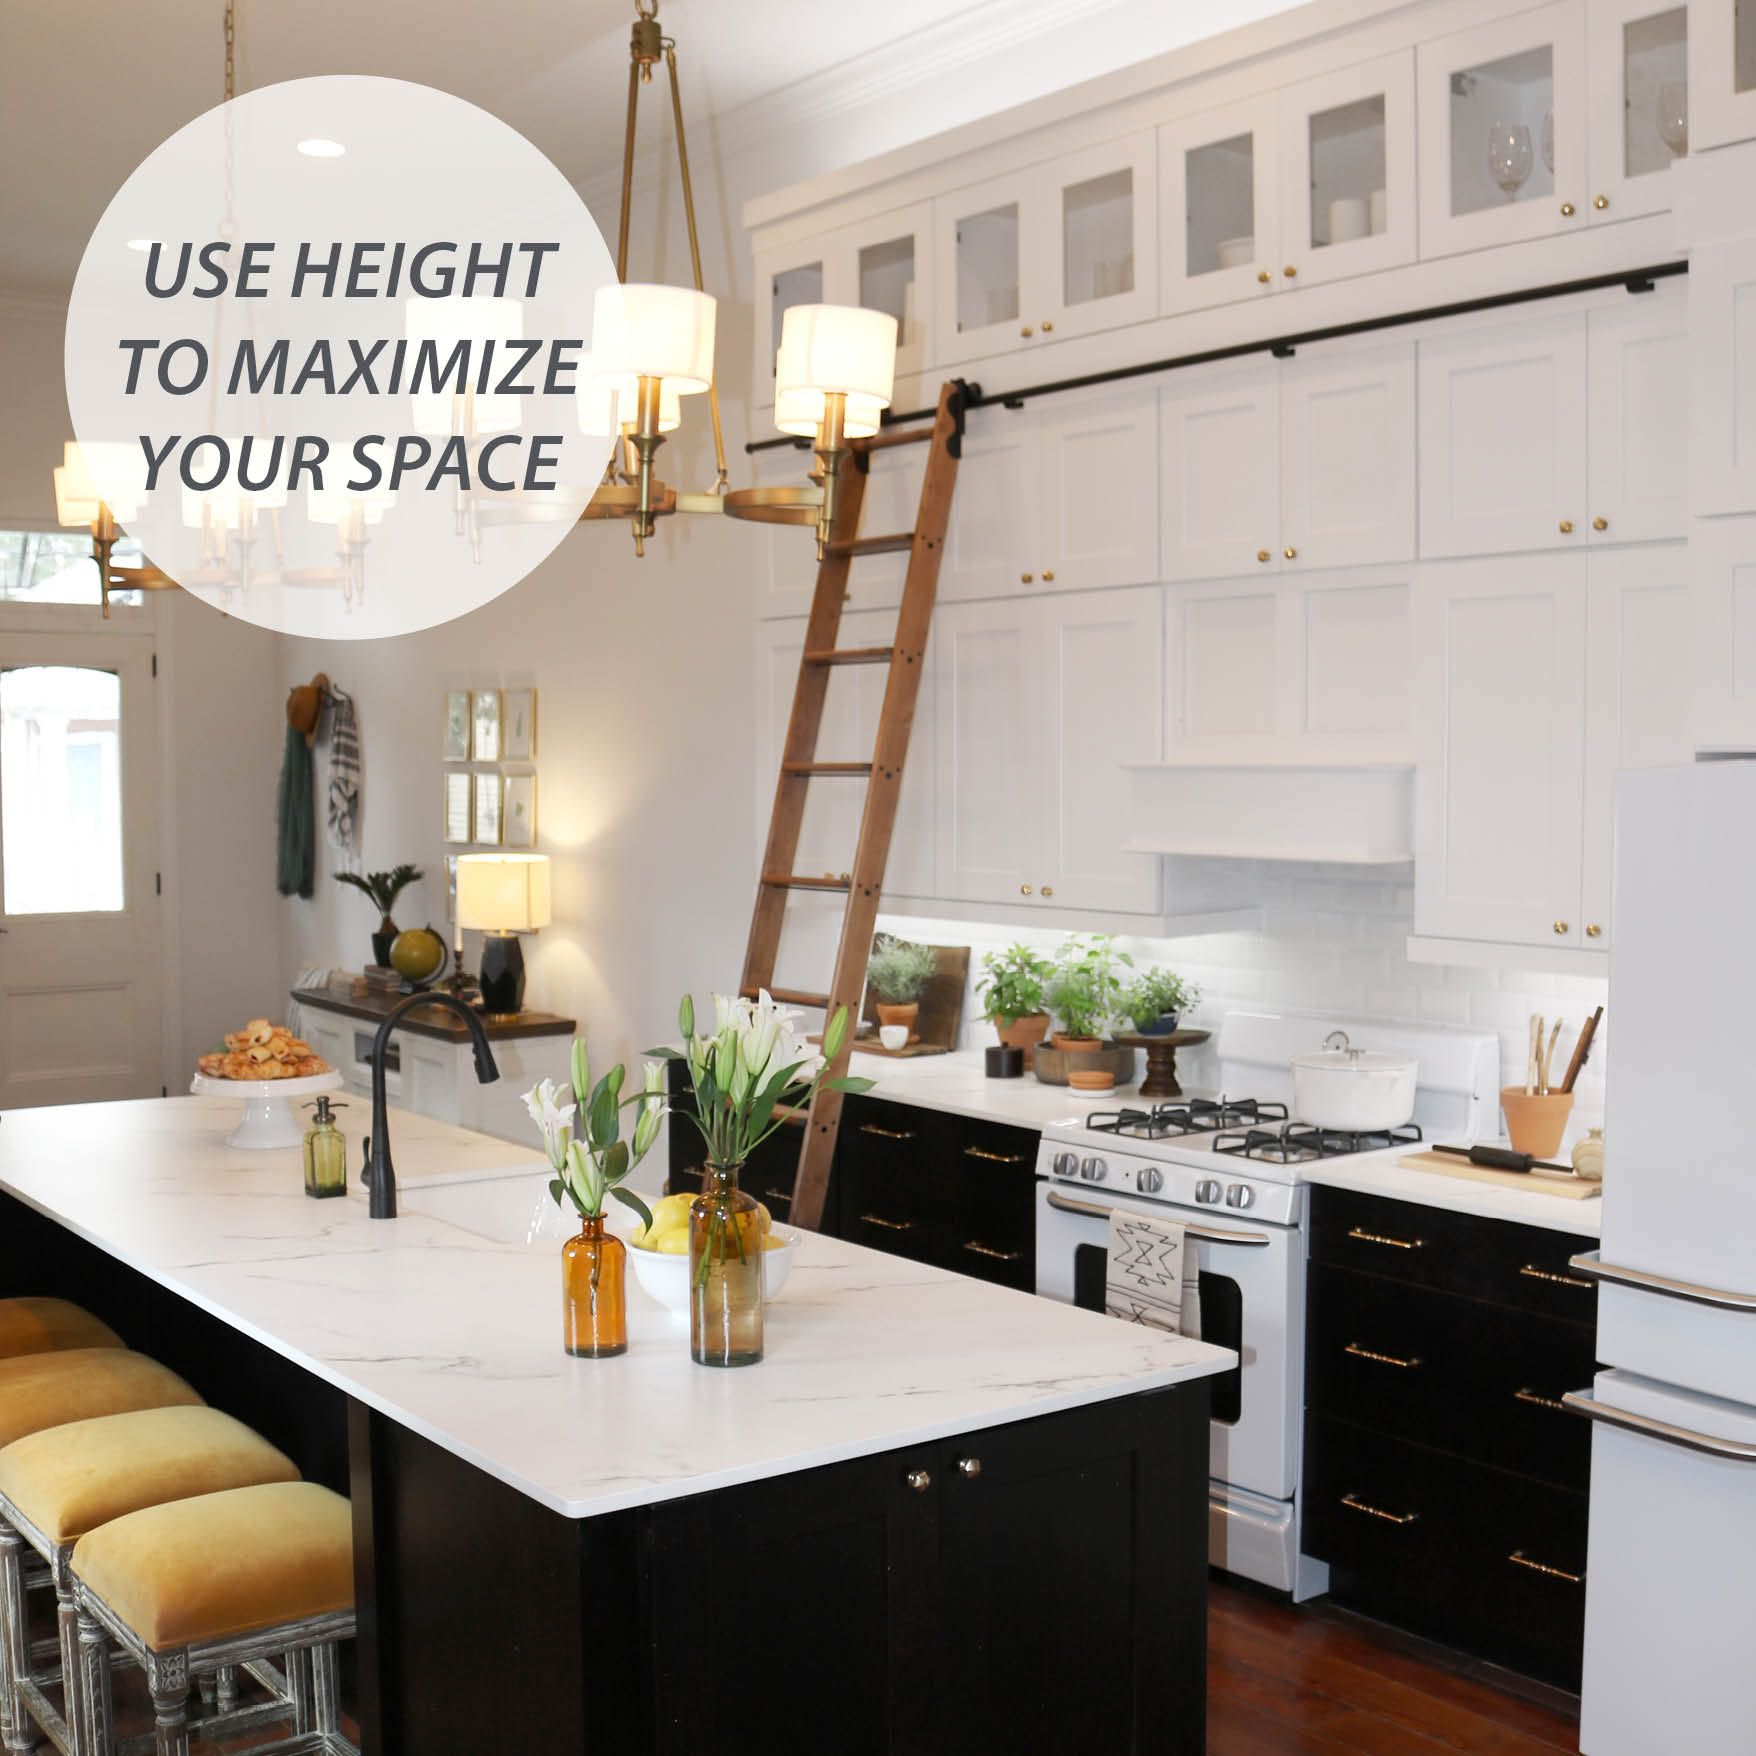 Small Spaces Require Big Ideas–use Height To Maximize Your